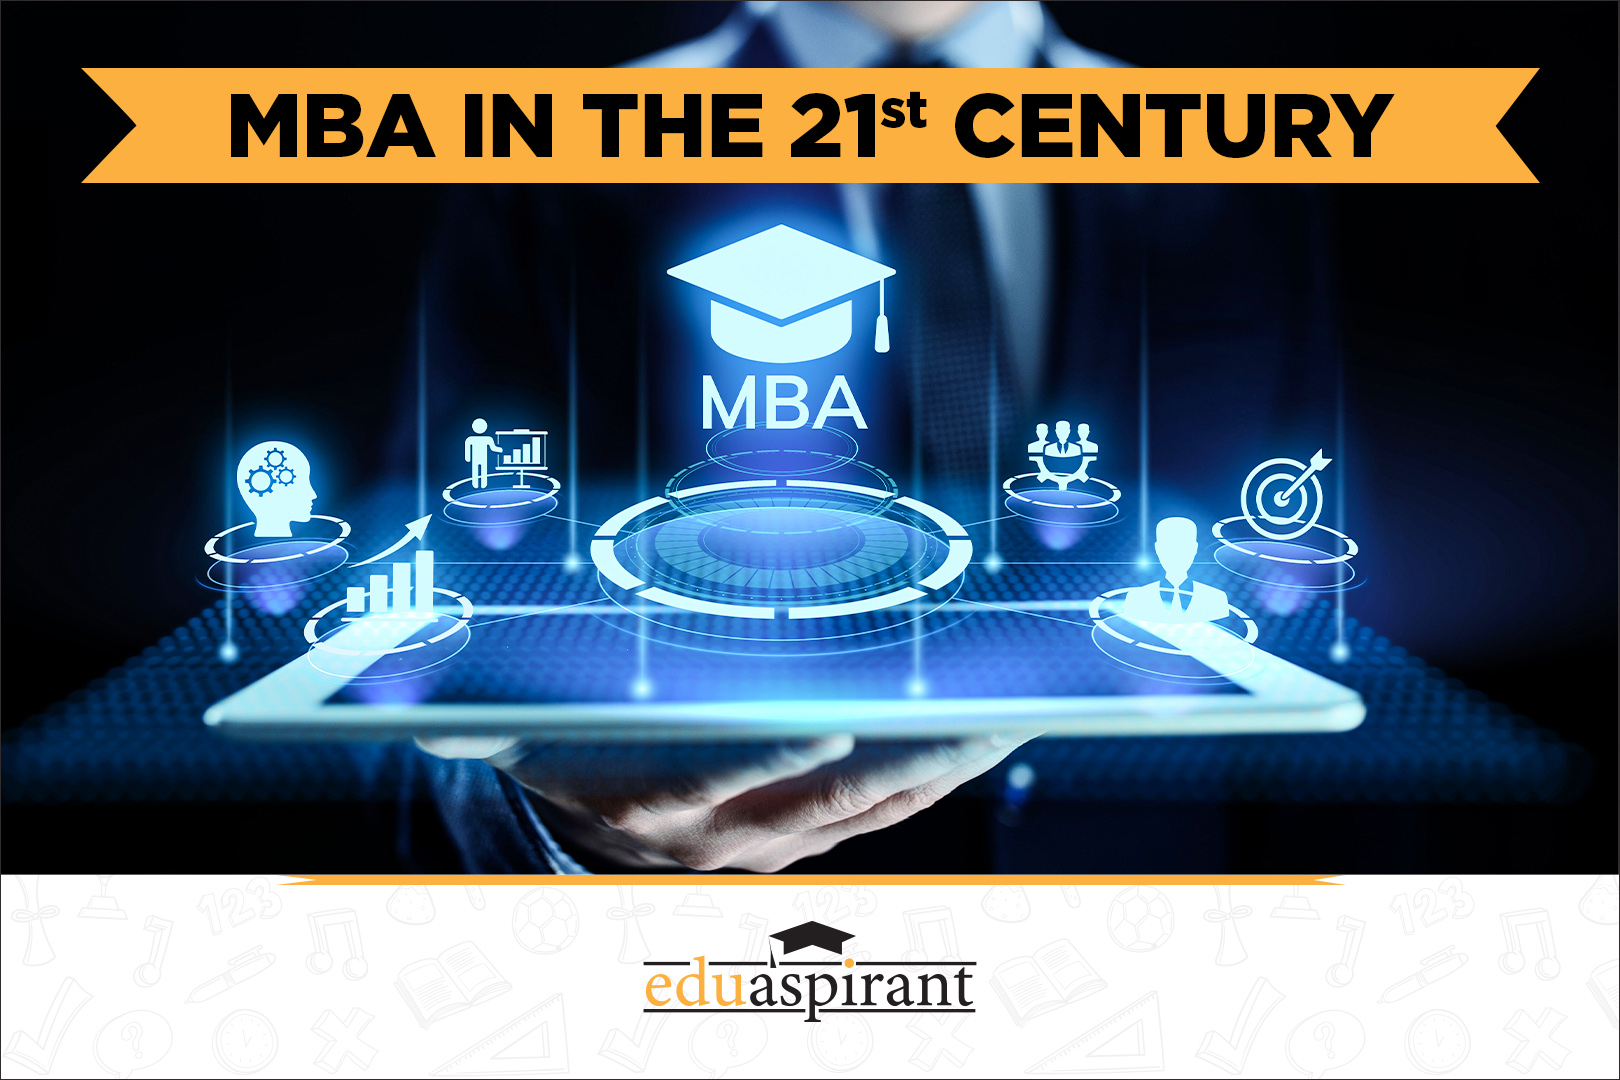 21st Century MBA: The risks and chaos no one tells you (and how to avoid them!)